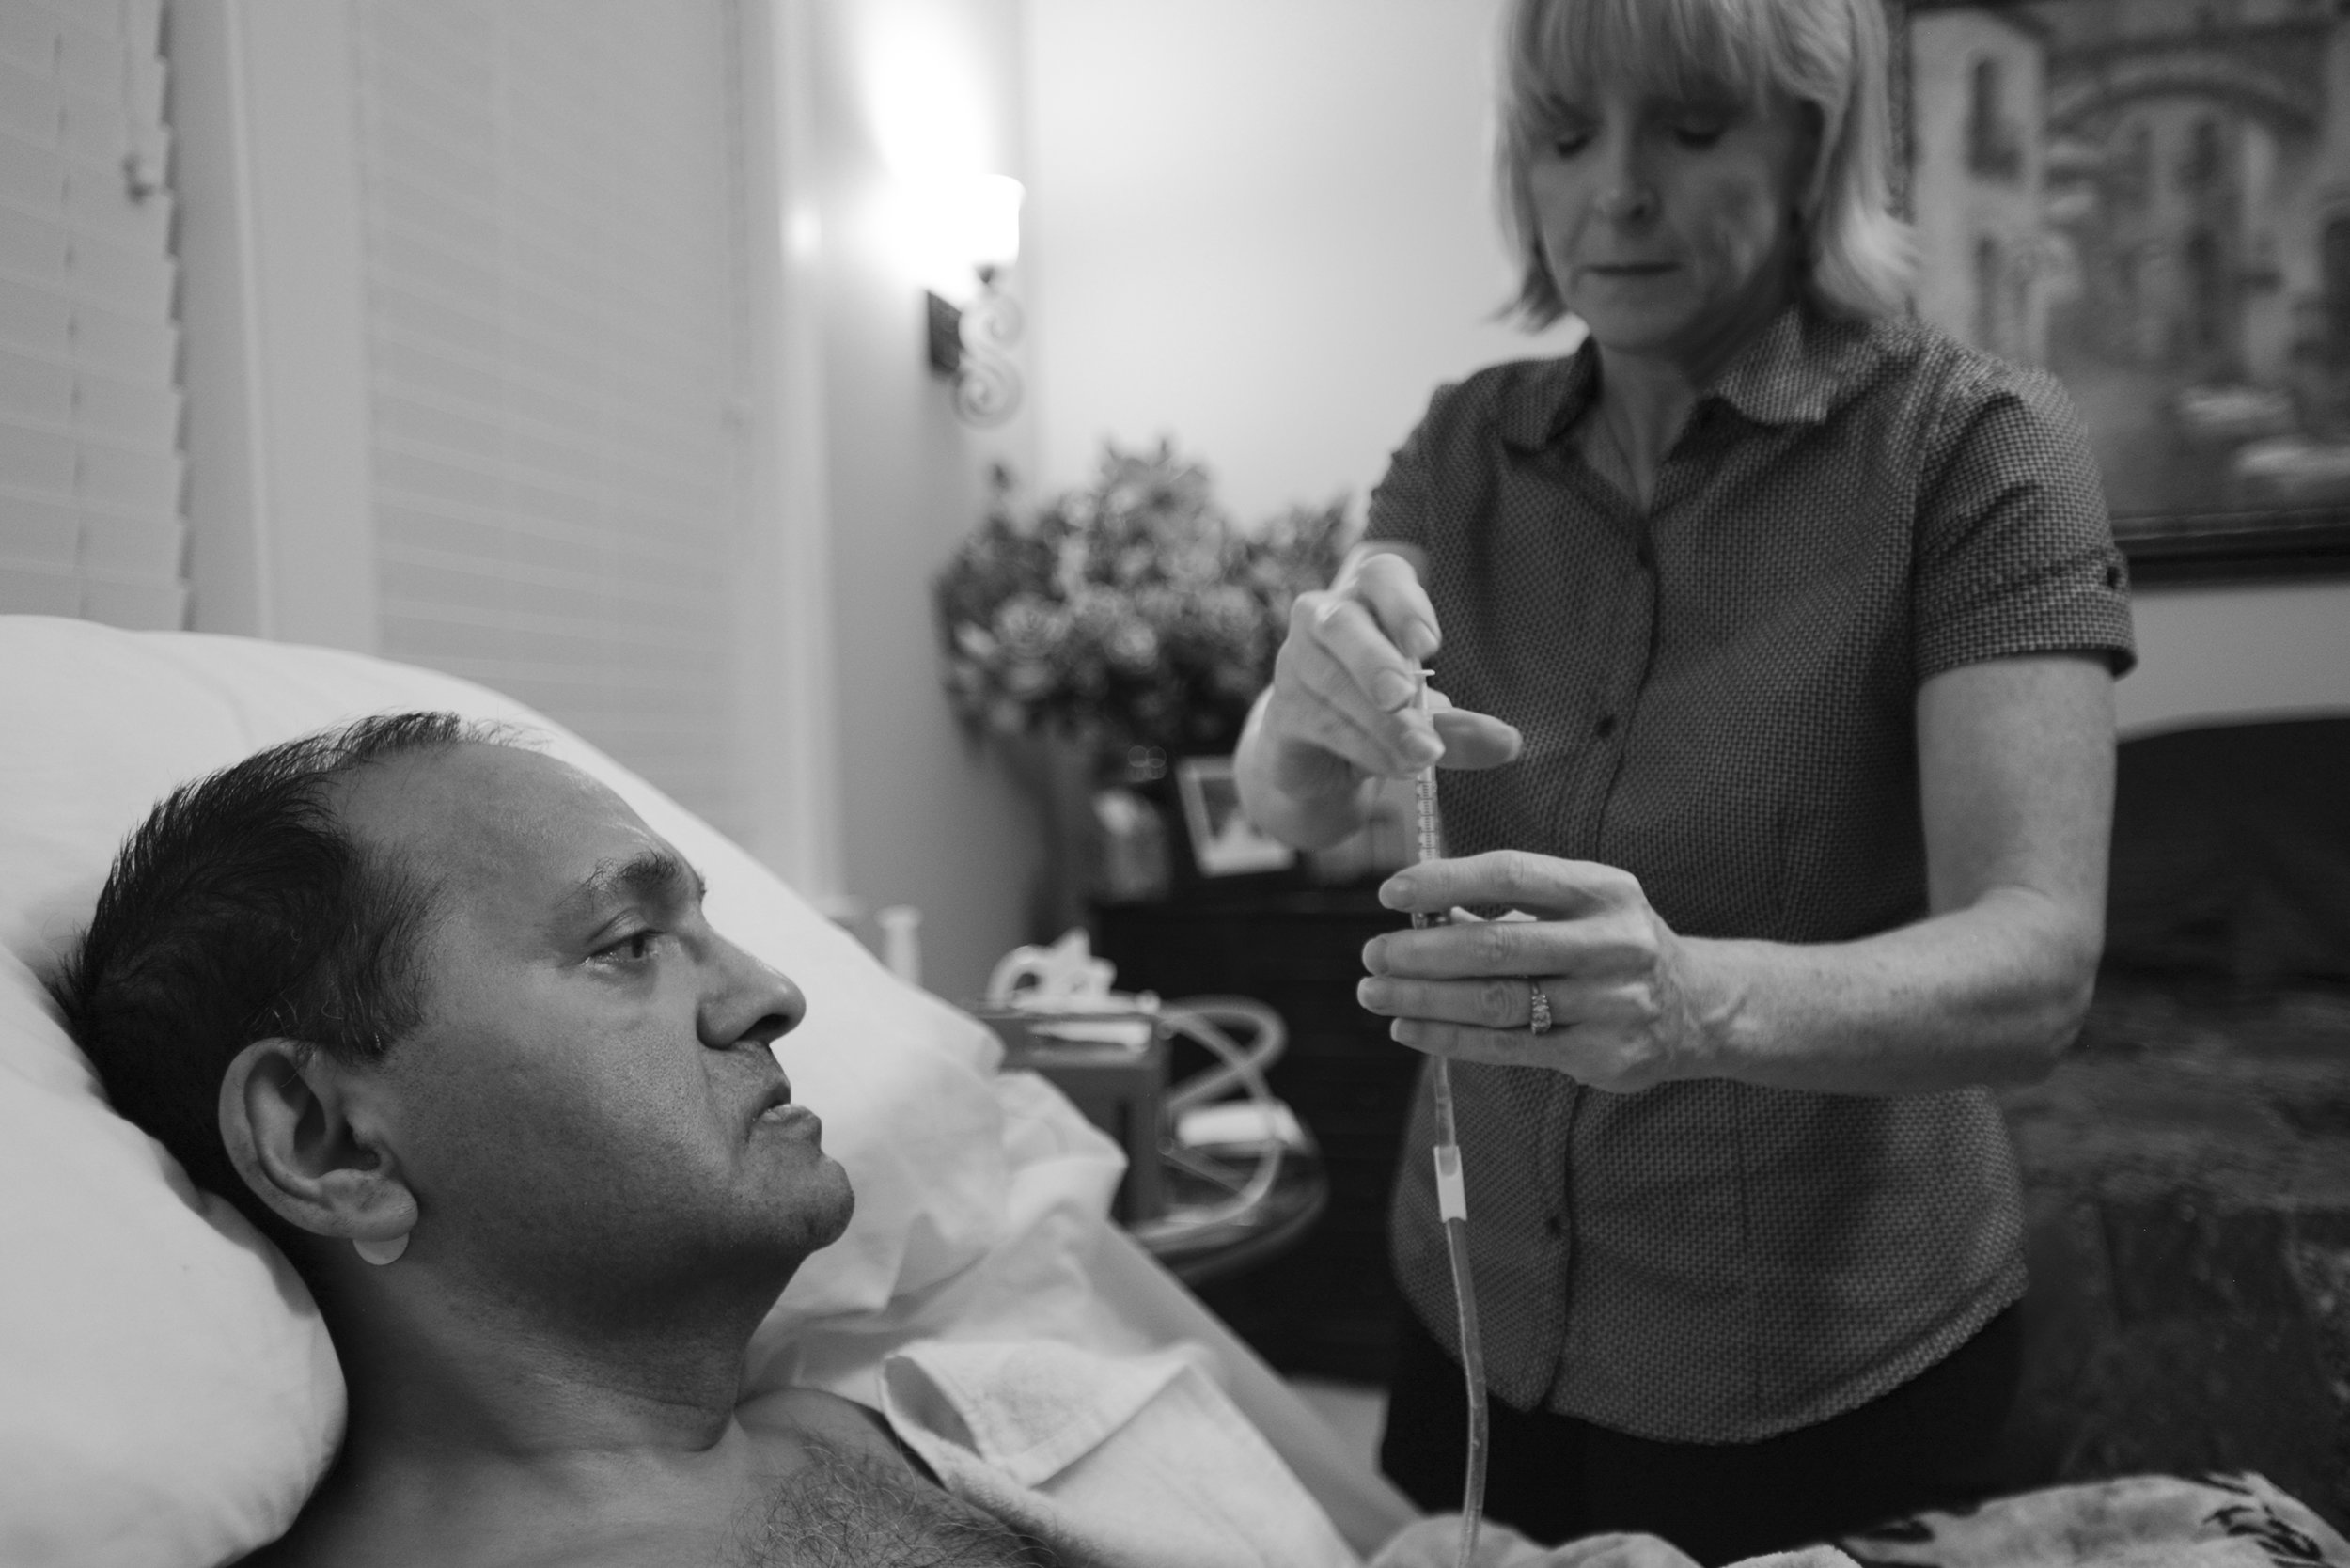 Akhil Jhaveri receives his evening medication through a feeding tube, from his wife, Laura Jhaveri August 21, 2015. Akhil was diagnosed with ALS, or Lou Gehrig's disease, in July 2011, and while he lost the ability to move his limbs and now has a feeding tube, he is trying to embrace the time he has left with his loved ones. (Ariane Kunze/The Columbian)